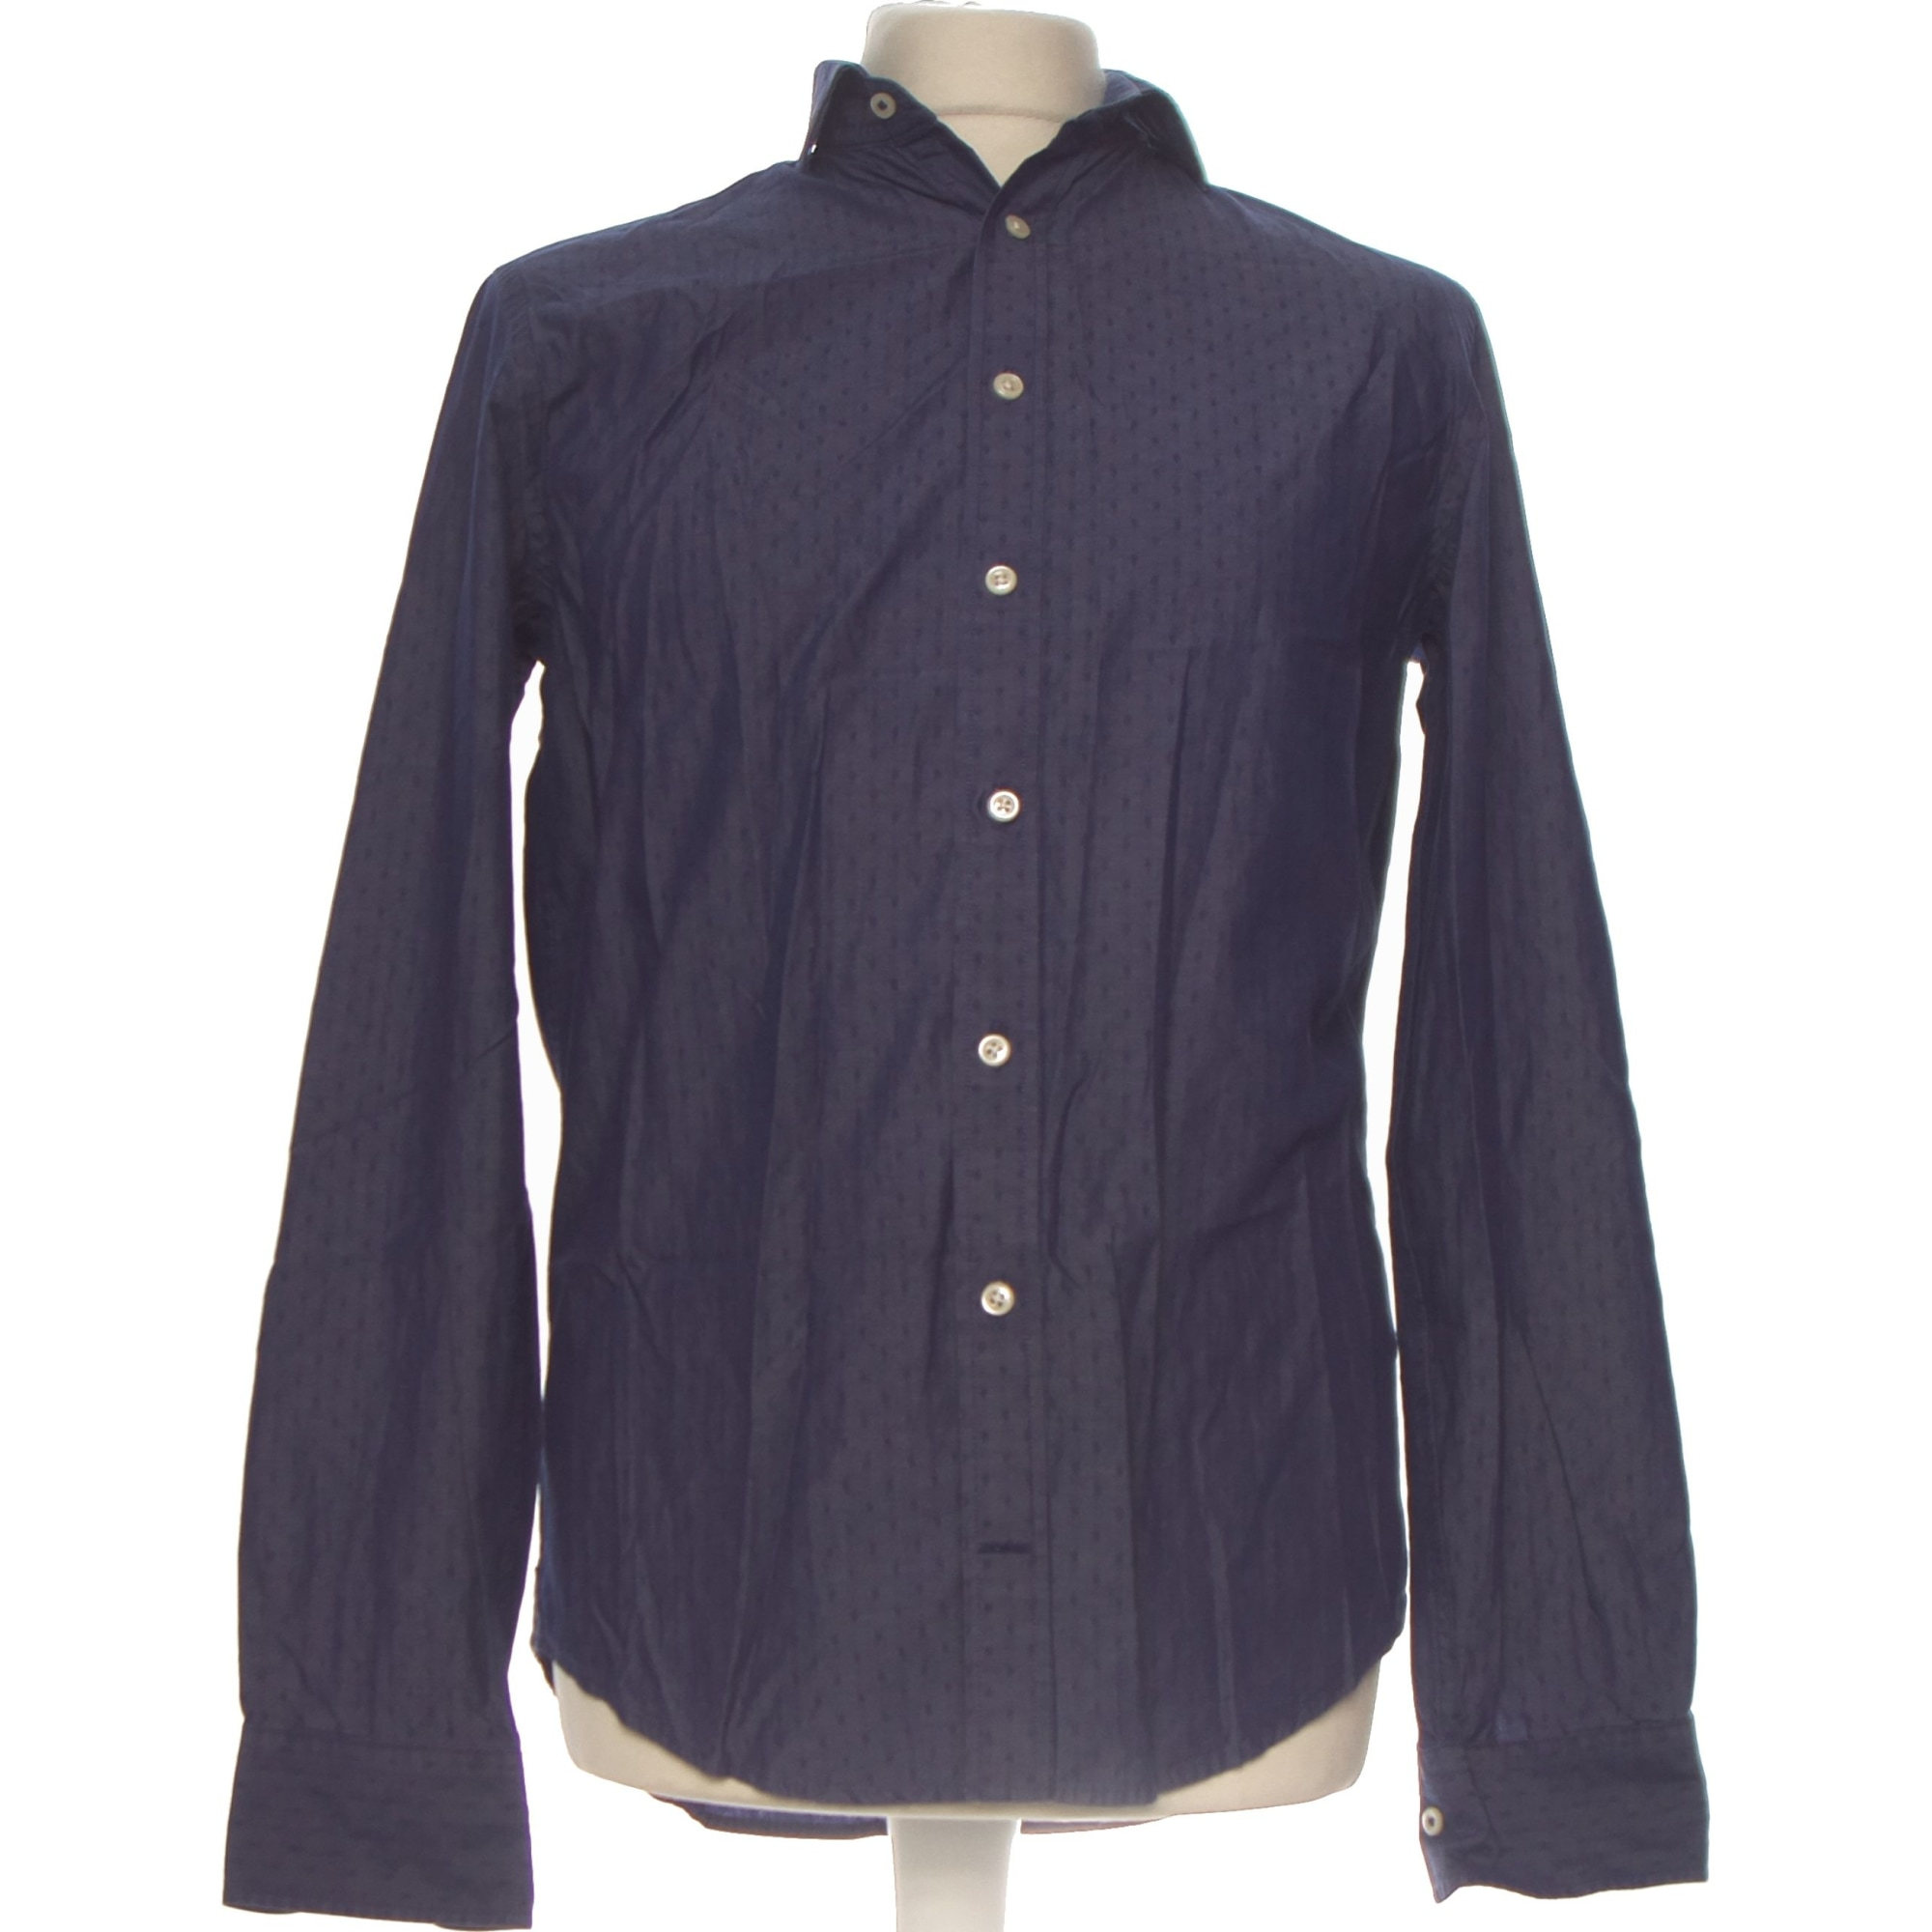 Shirt TOMMY HILFIGER Blue, navy, turquoise